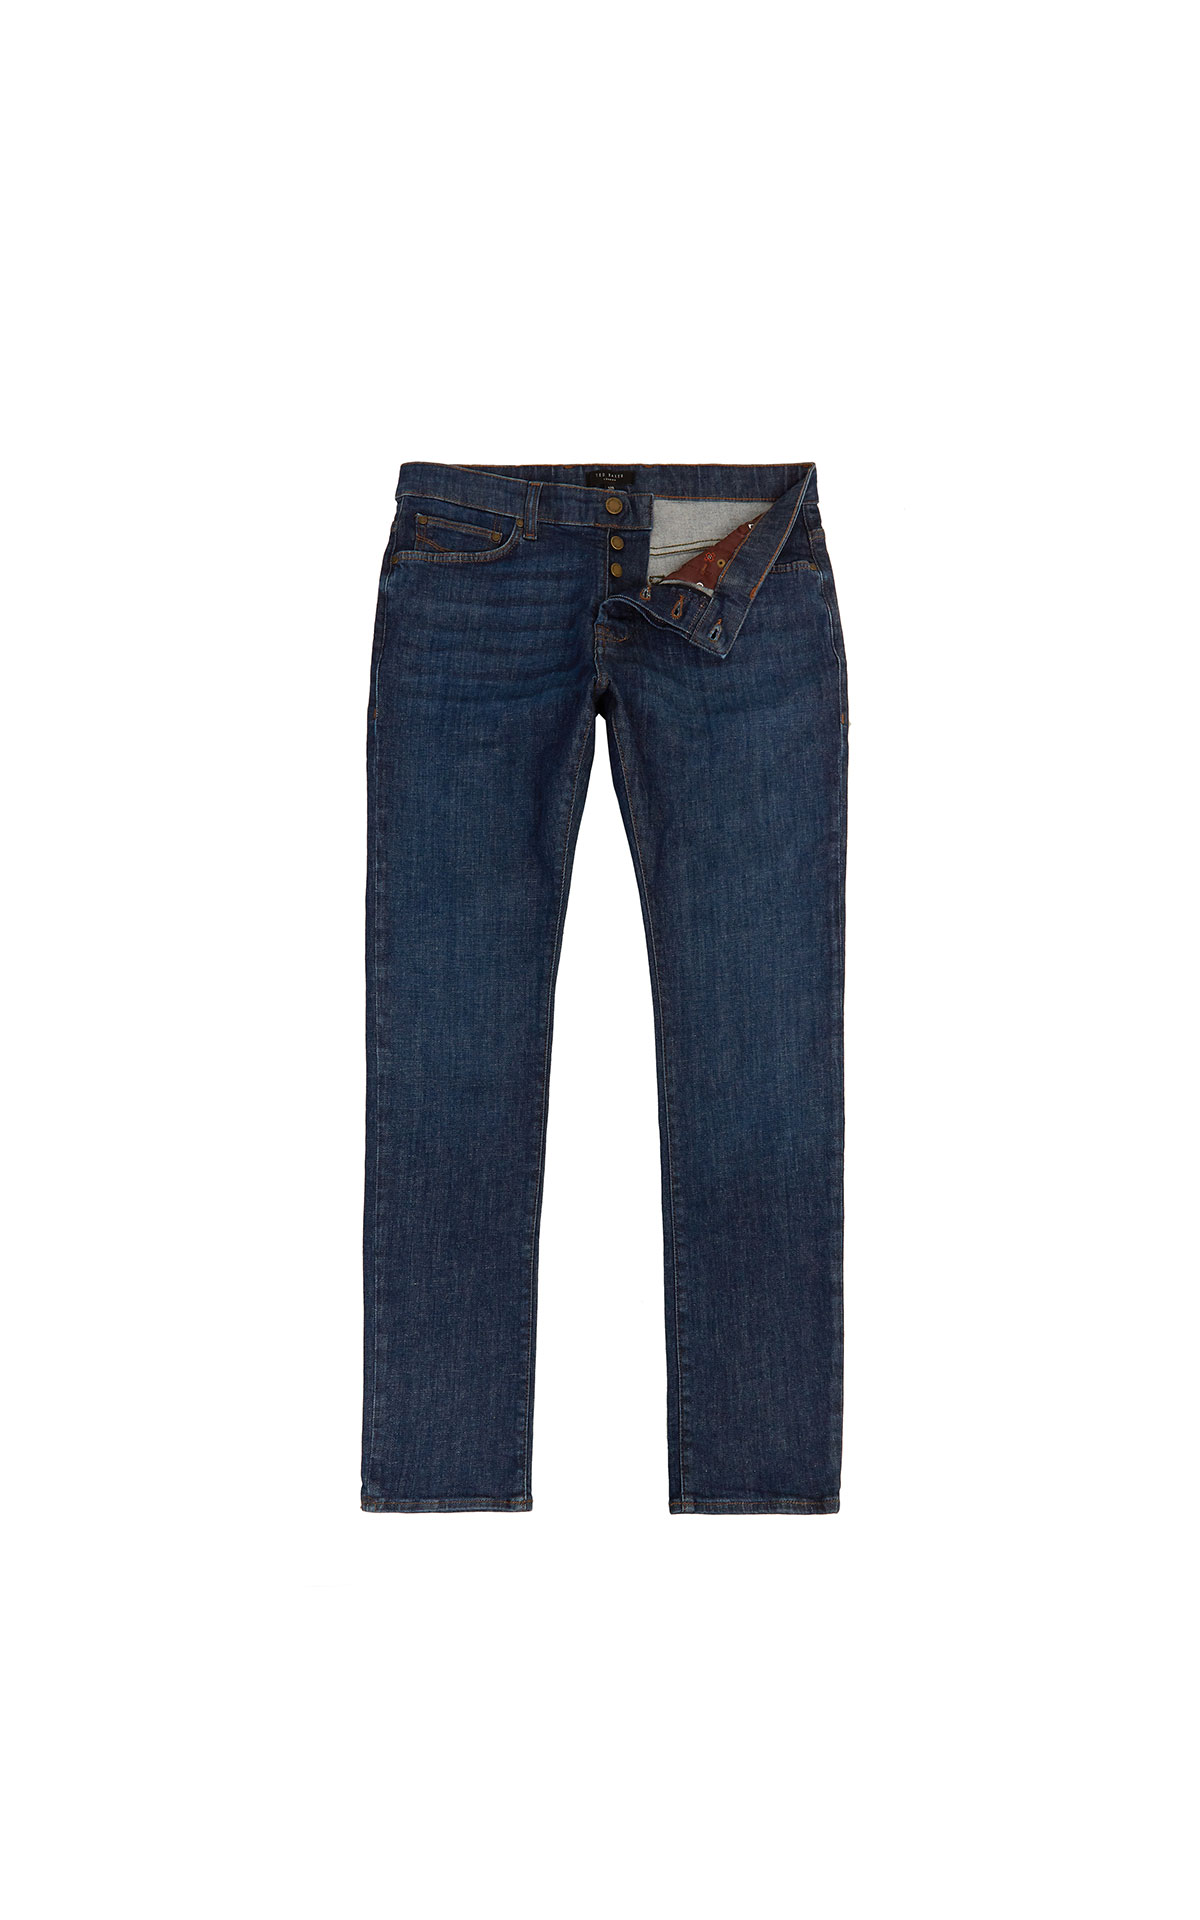 Ted Baker TWEETE Tapered Fit Mid Wash Menswear Jean at The Bicester Village Shopping Collection